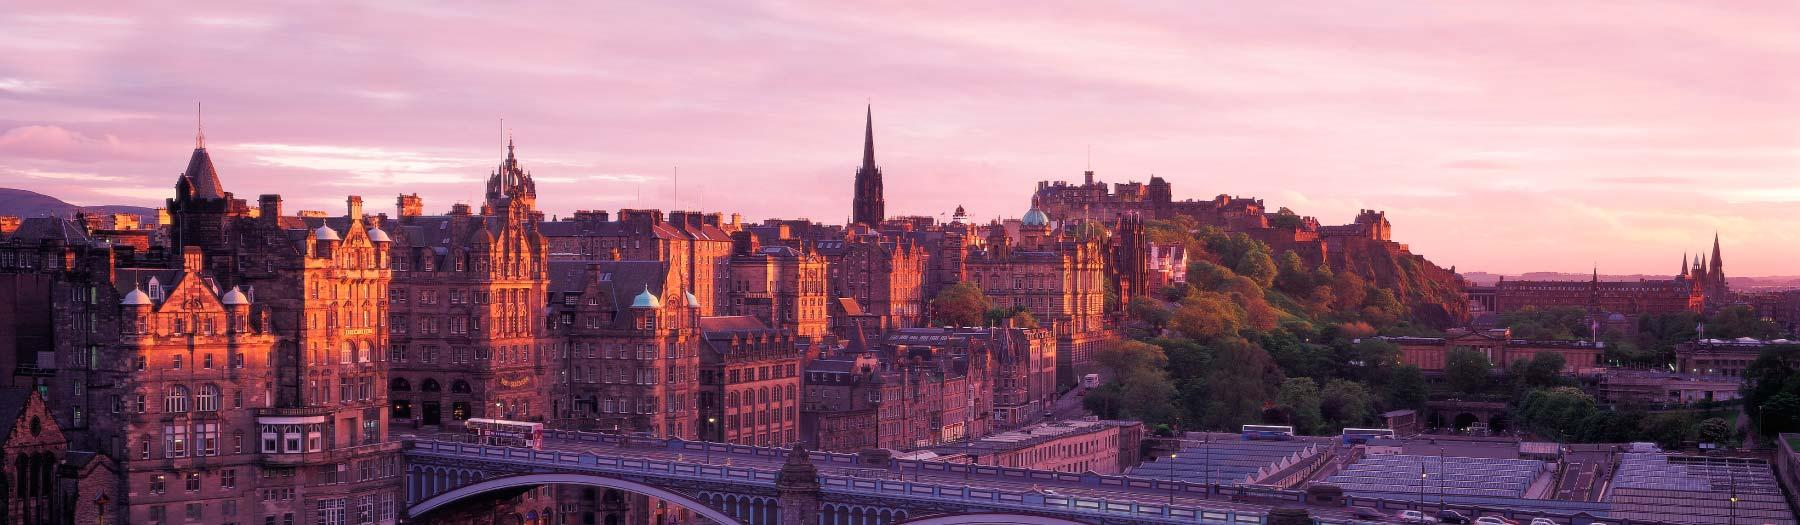 Image: Edinburgh Skyline. Credit: Image used with permission from VisitScotland and Scottish Viewpoint.